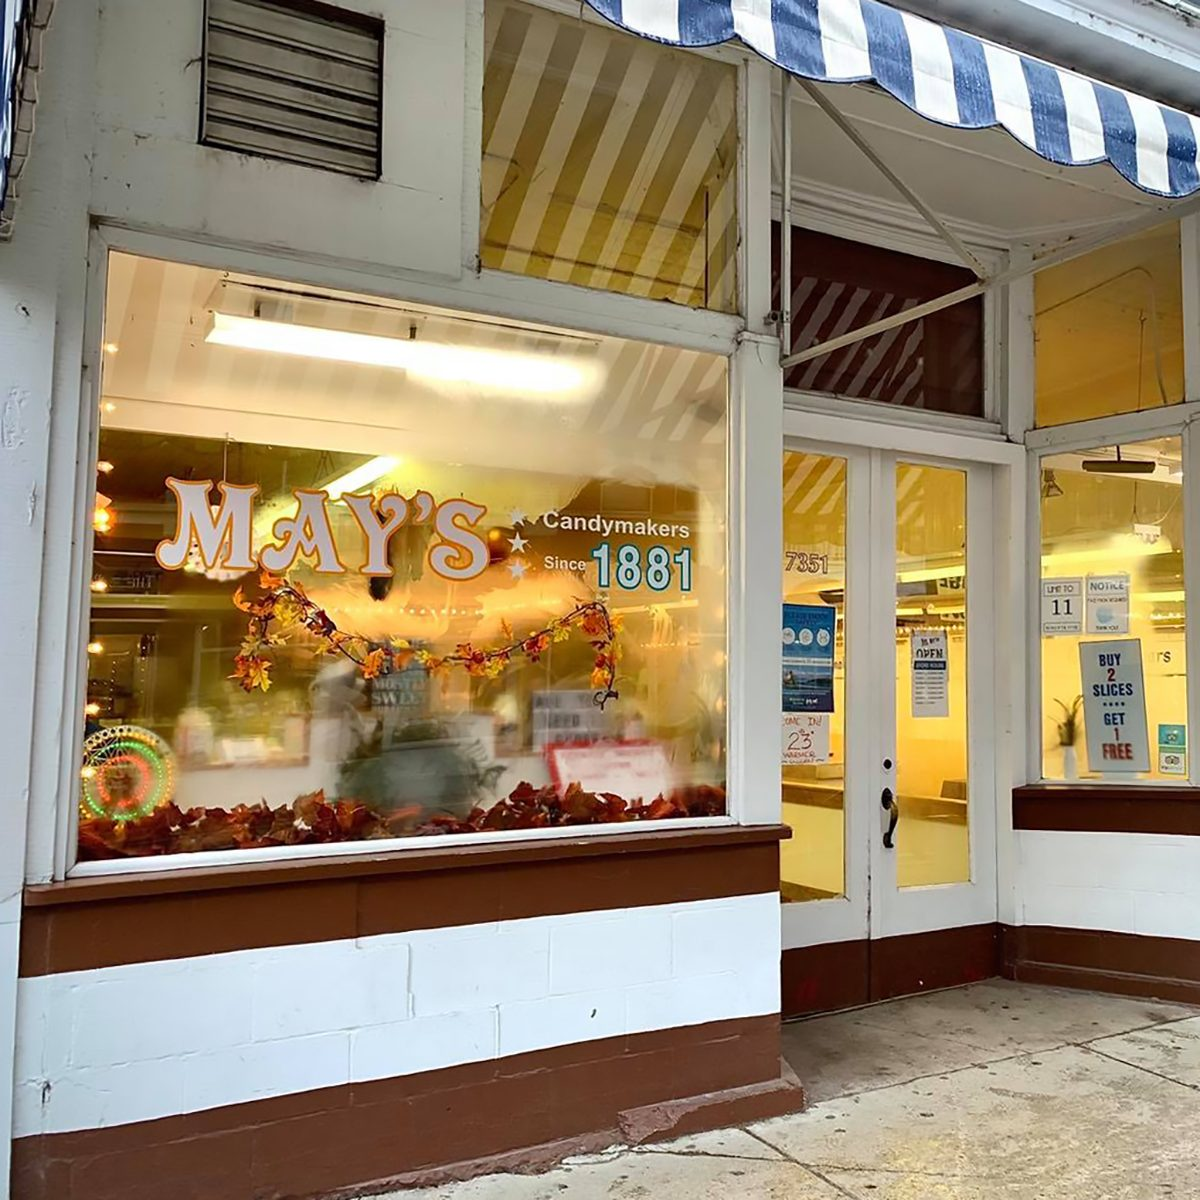 The Best Fudge Shop in Michigan - May's Candy Shop